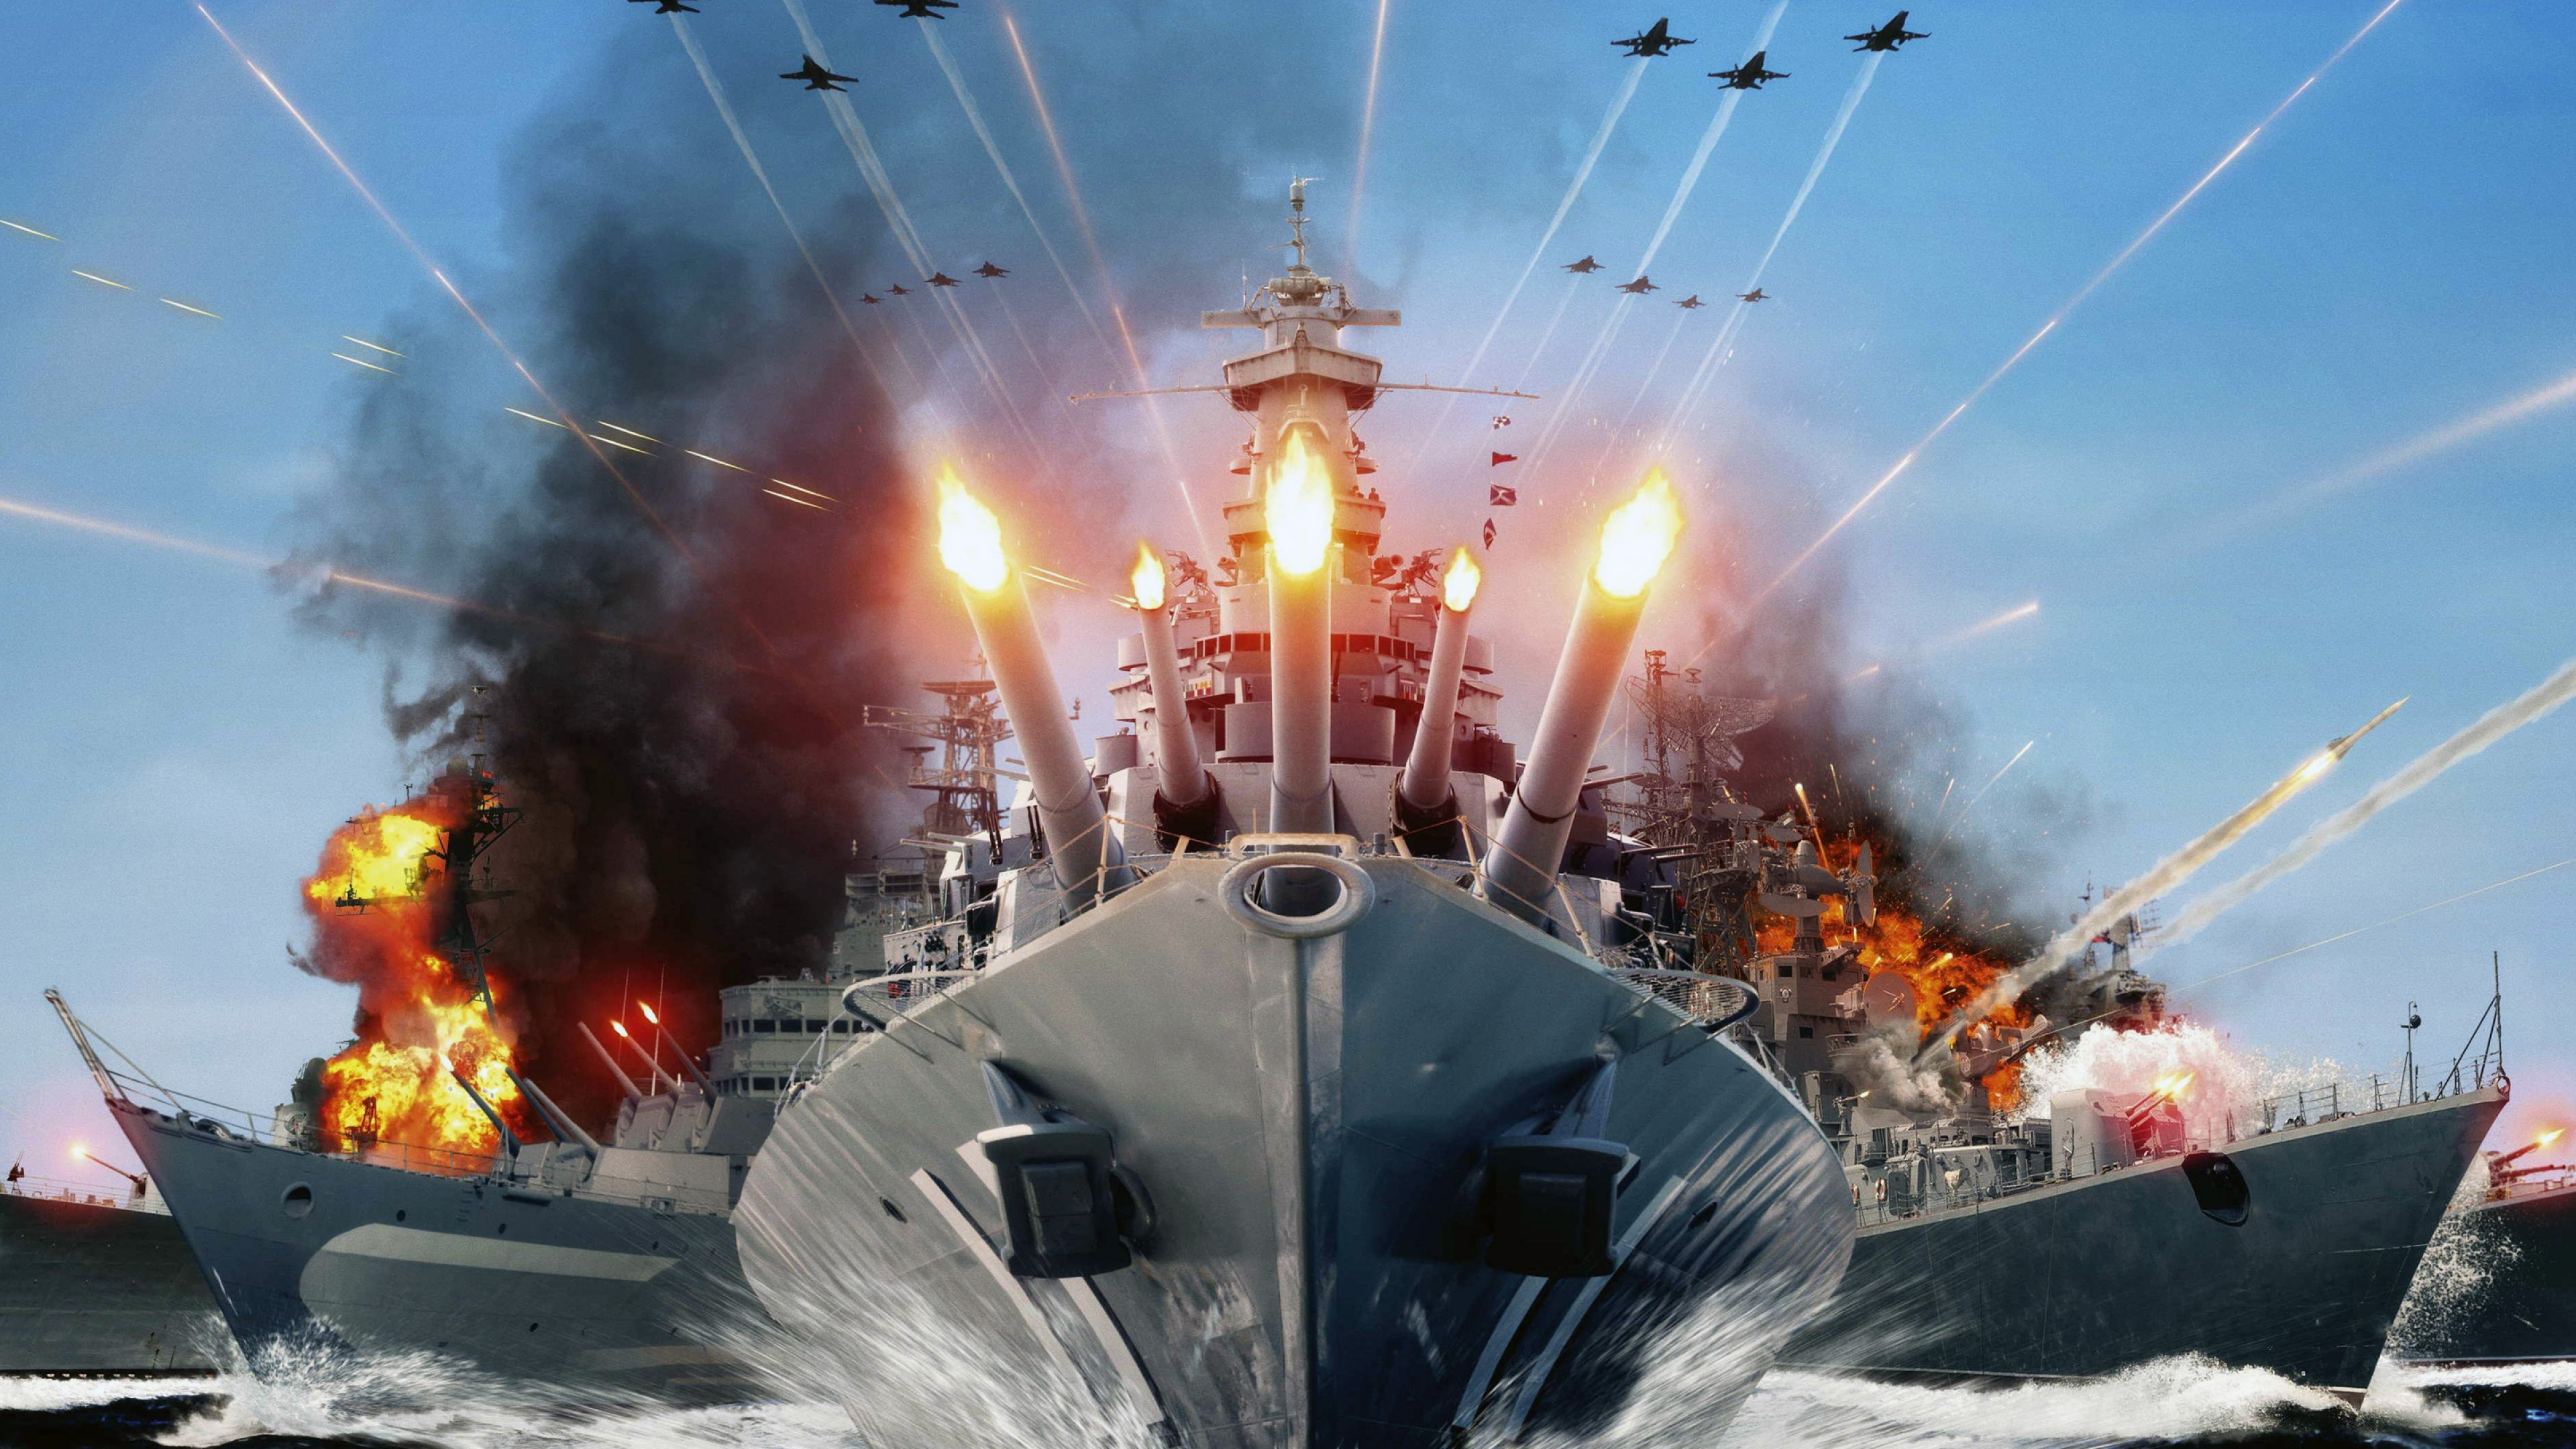 World Of Warships Hd Wallpaper For Desktop And Mobiles 4k Ultra Hd